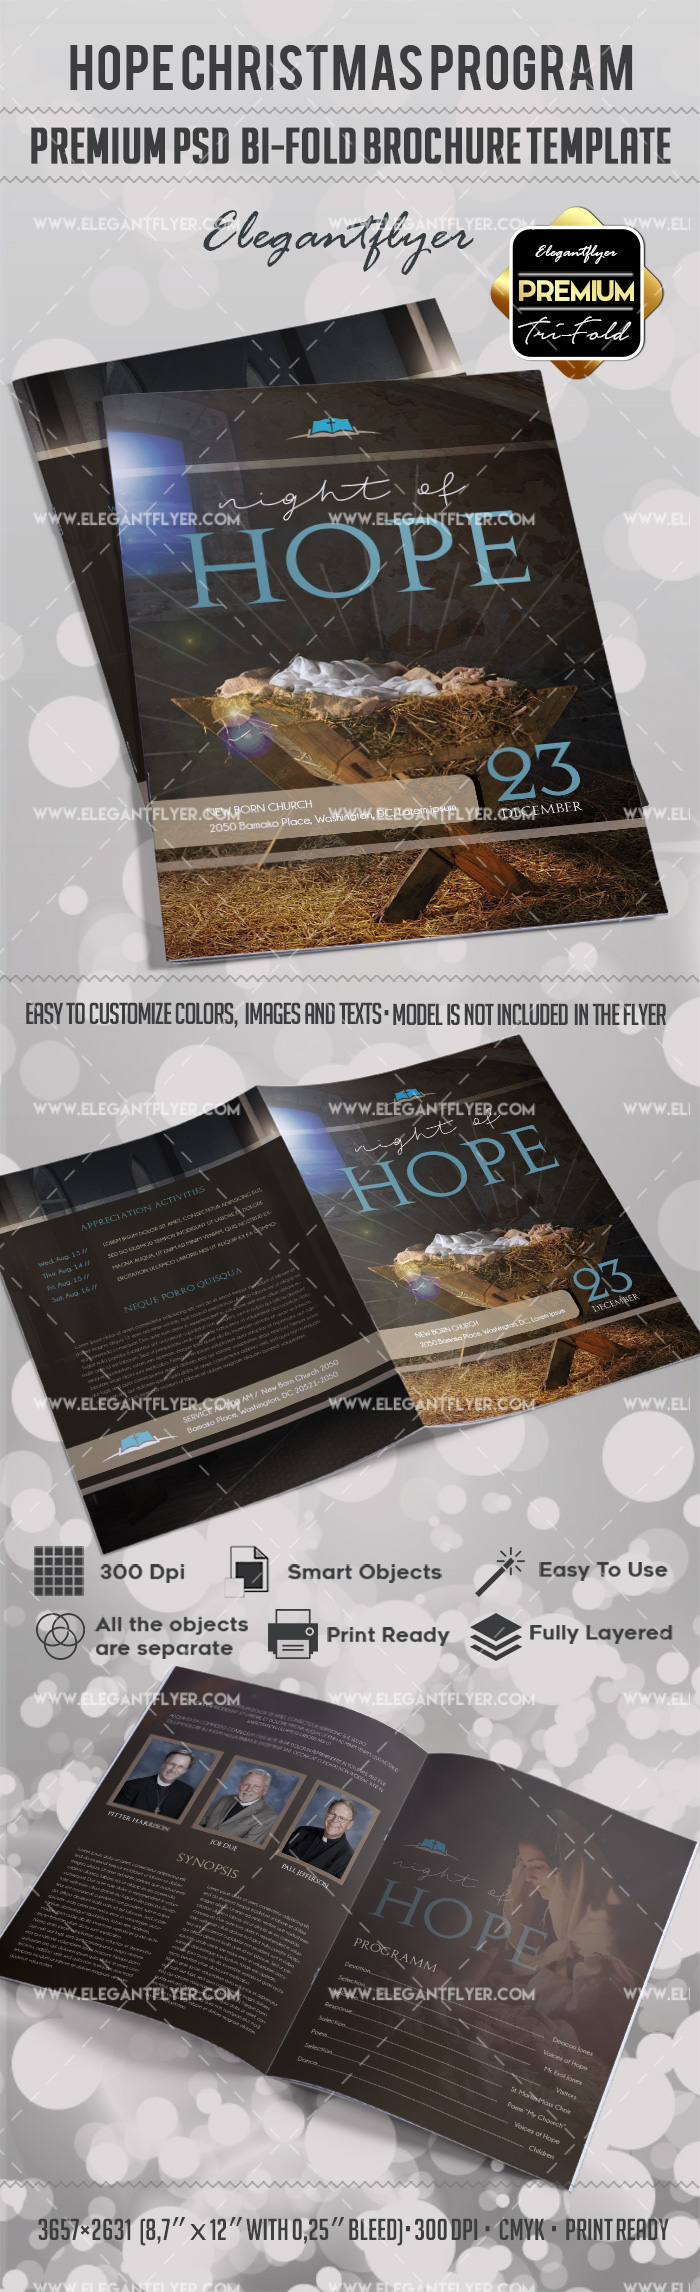 Hristmas hope program template by elegantflyer for 2 fold brochure template psd